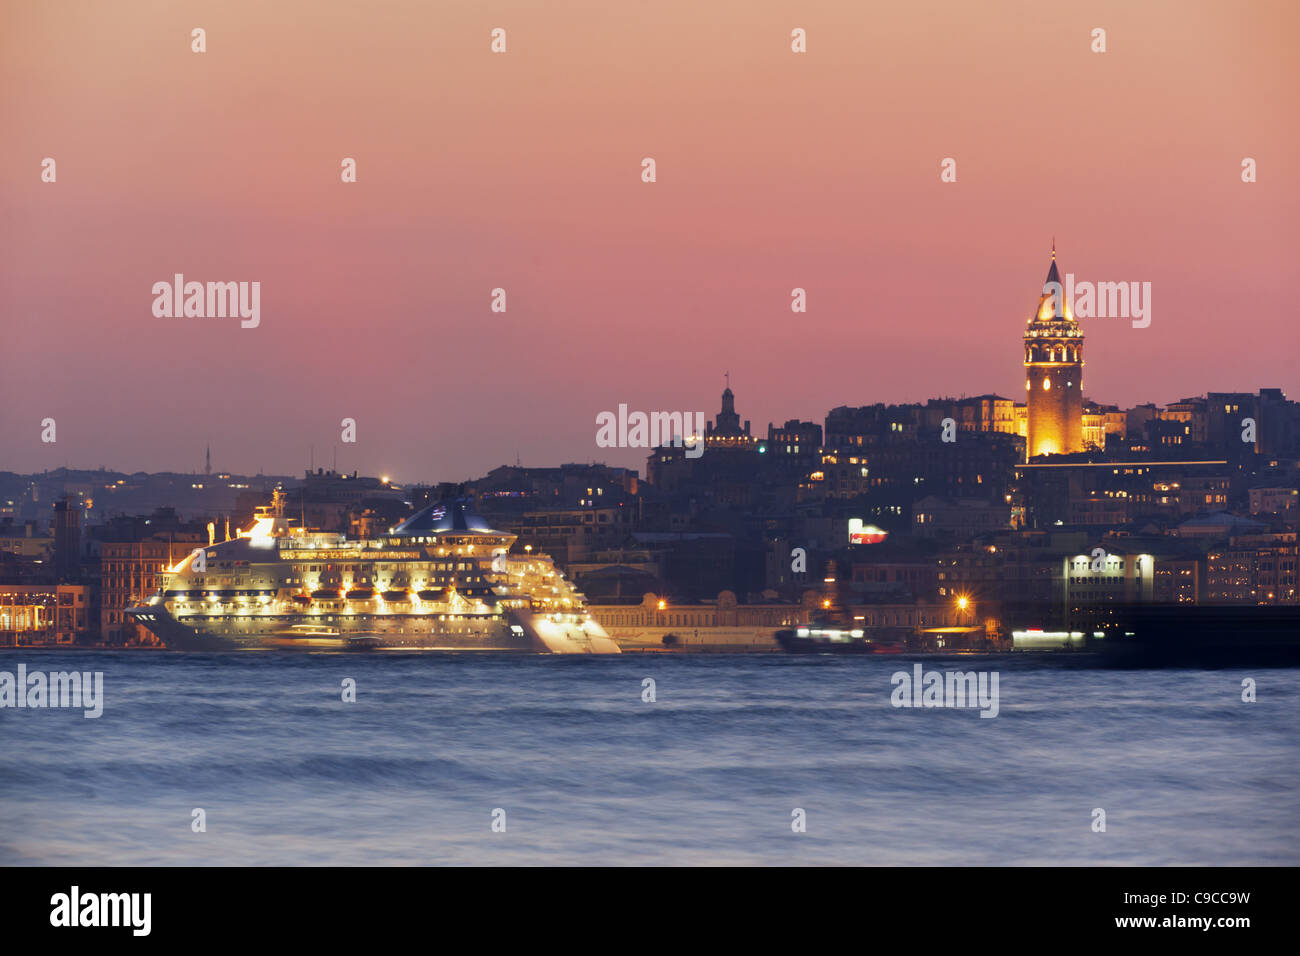 Ferry ,Galata tower, Beyoglu, Istanbul, Turkey , Europe, - Stock Image